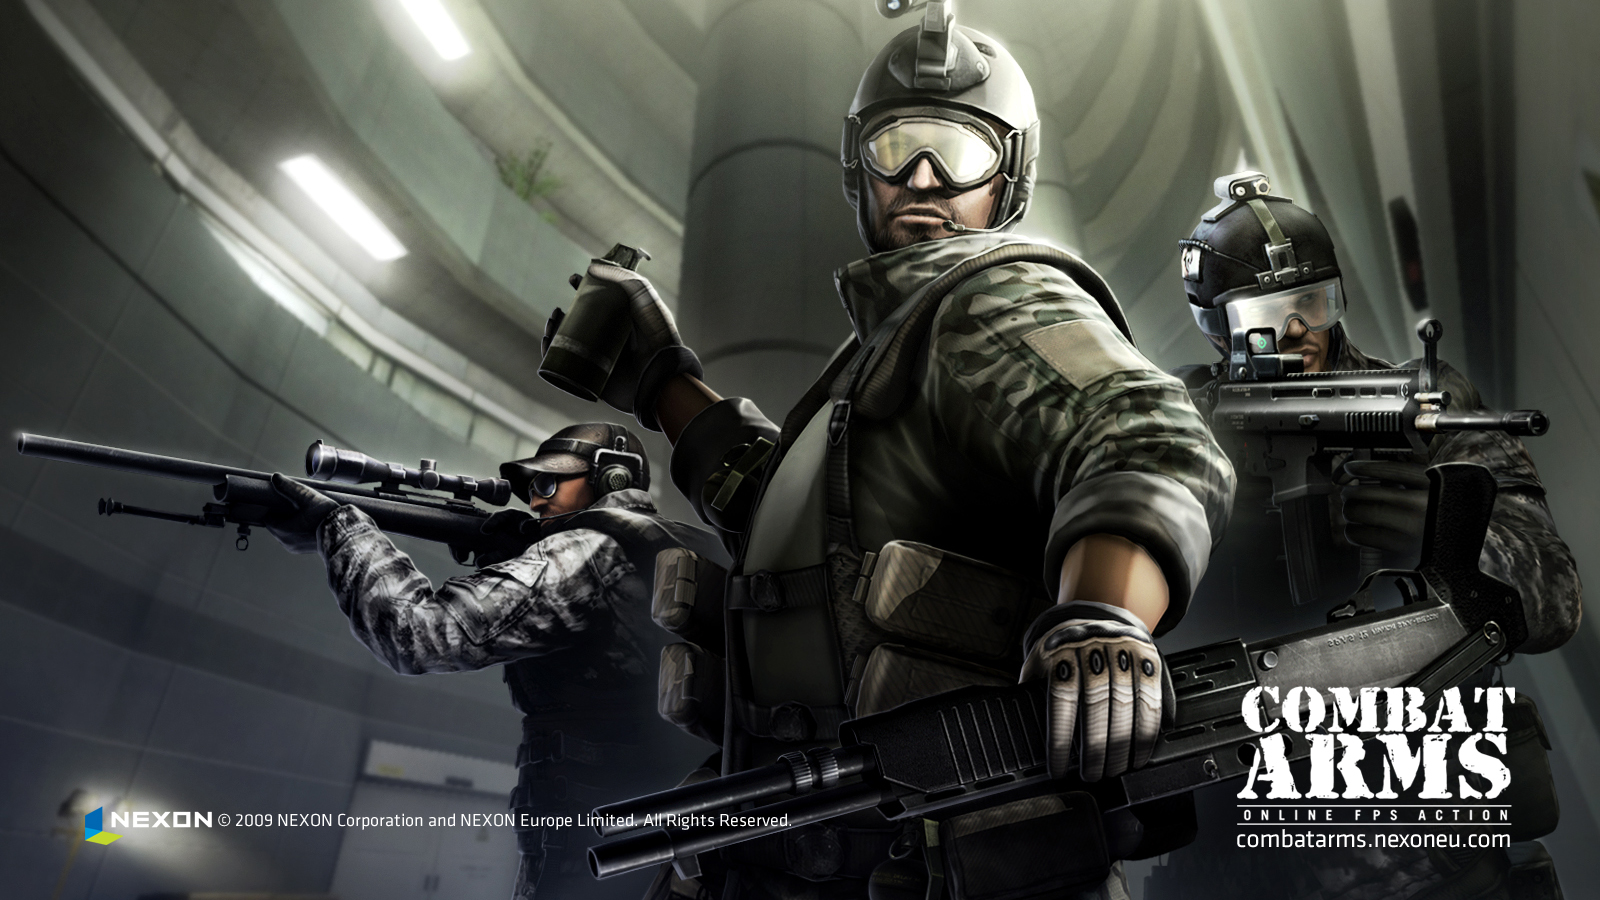 Click image for larger version. Name:	Combat Arms - 1600 x 900 1.jpg Views:	2010 Size:	855.4 KB ID:	401